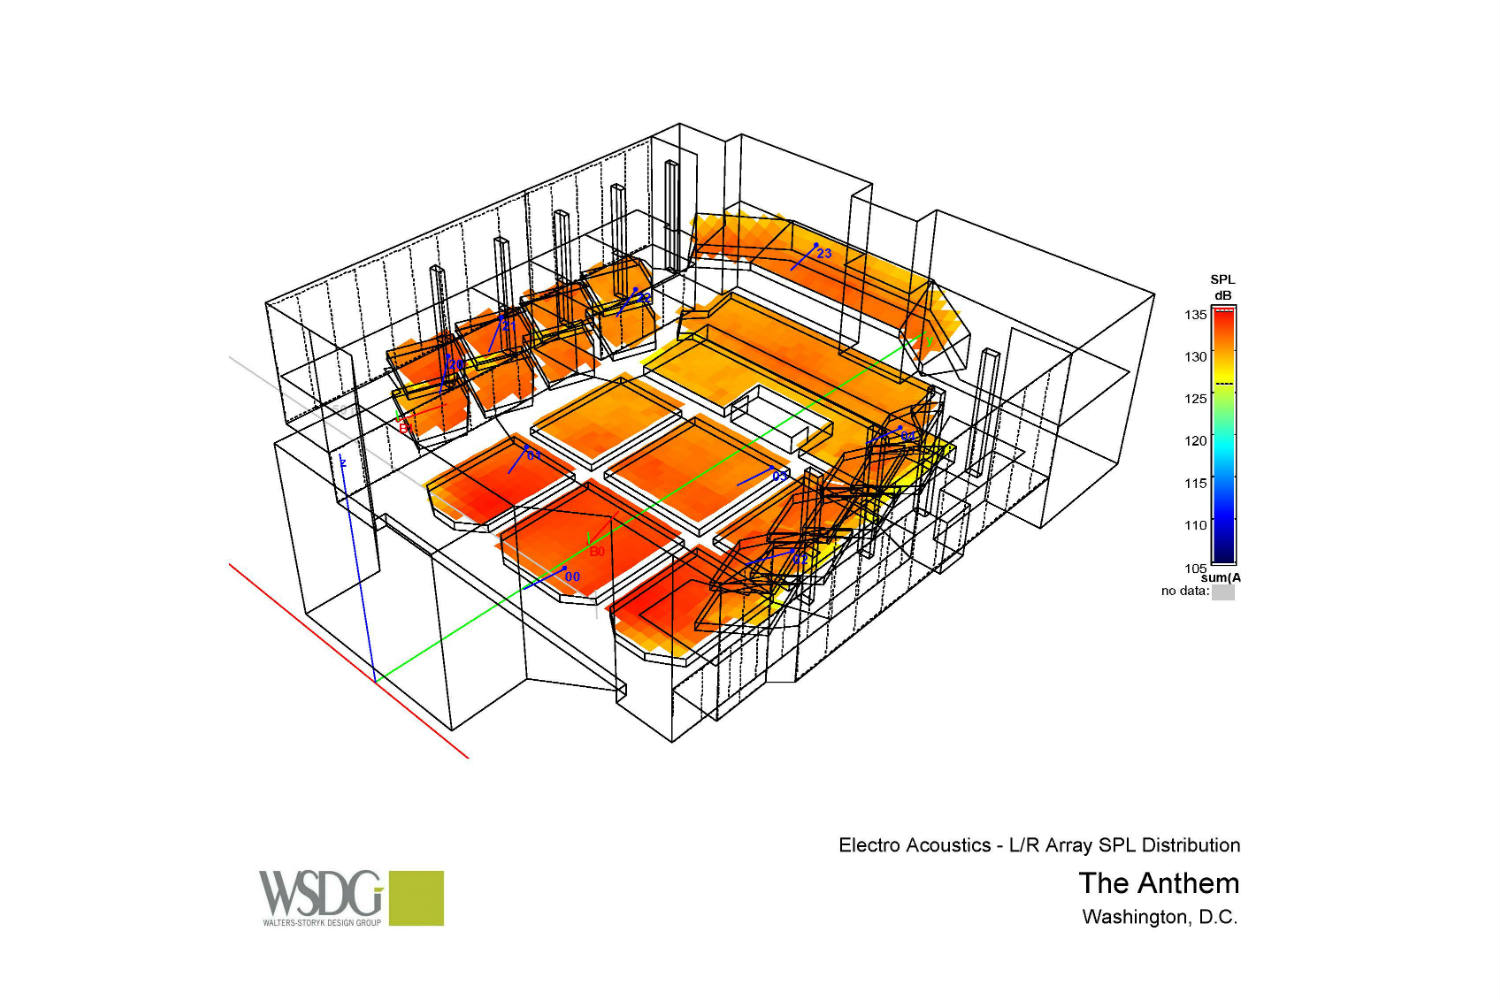 The Anthem, is a game-changing, multi-tiered concert hall created by impresario, Seth Hurwitz. To provide flawless acoustics, the WSDG team was commissioned to take care of the acoustic modeling and simulations. Presentation drawing 2